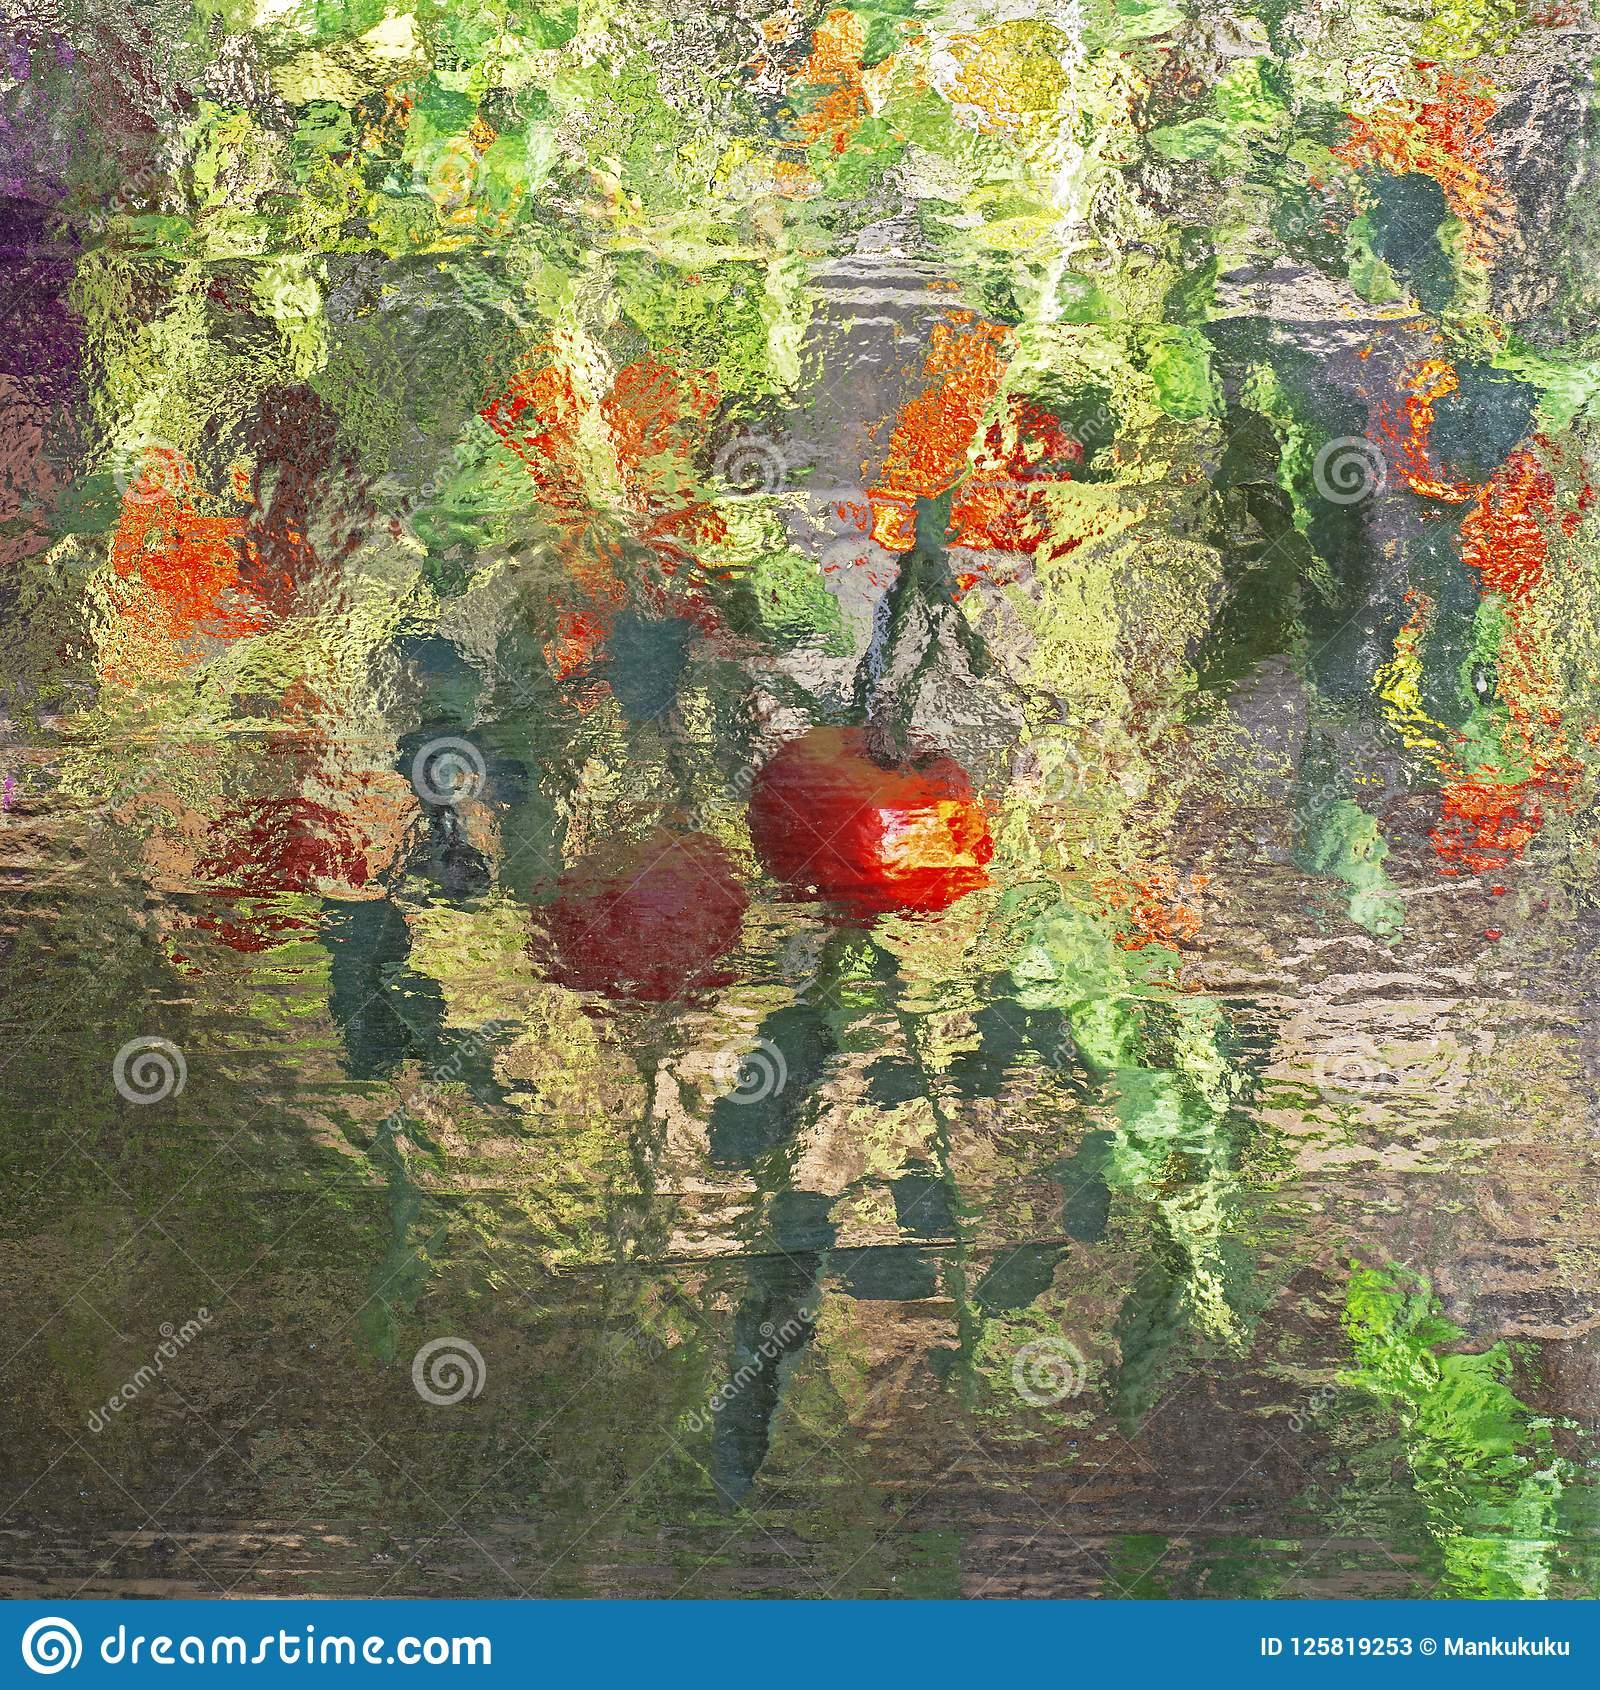 Colourful abstract stained glass. Vegetables reflection in window.